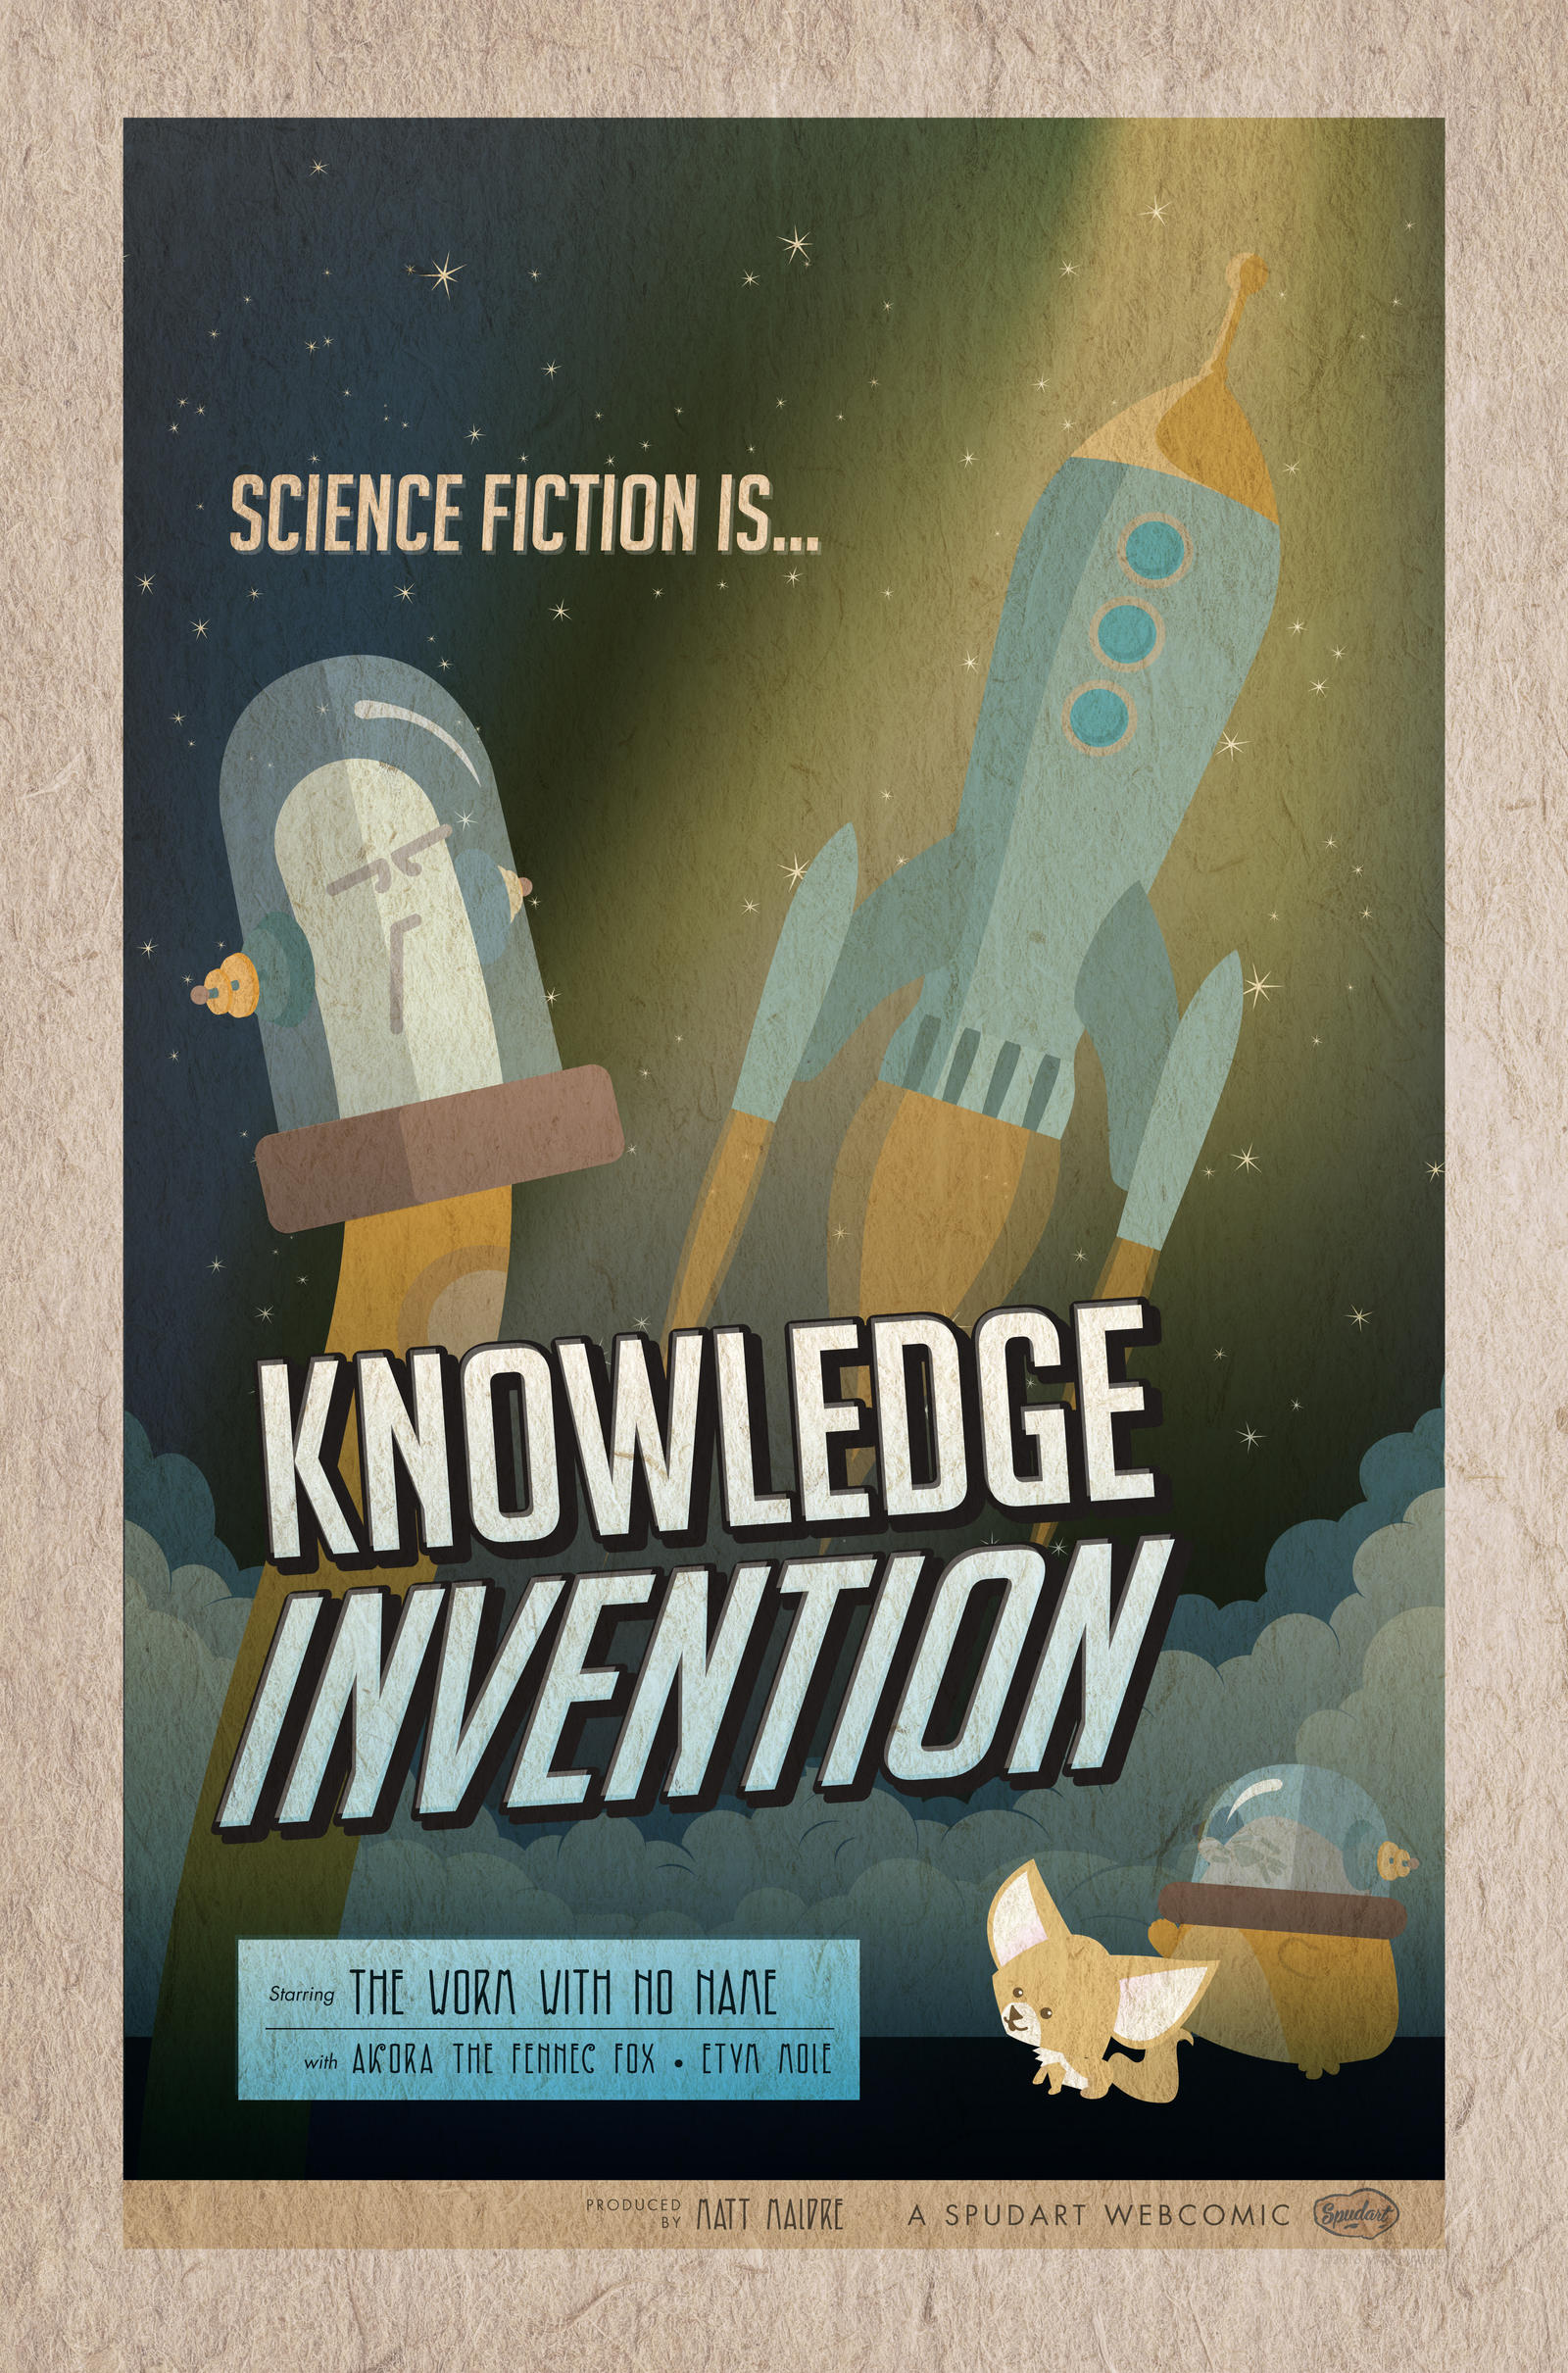 Science fiction is Knowledge invention by spudart